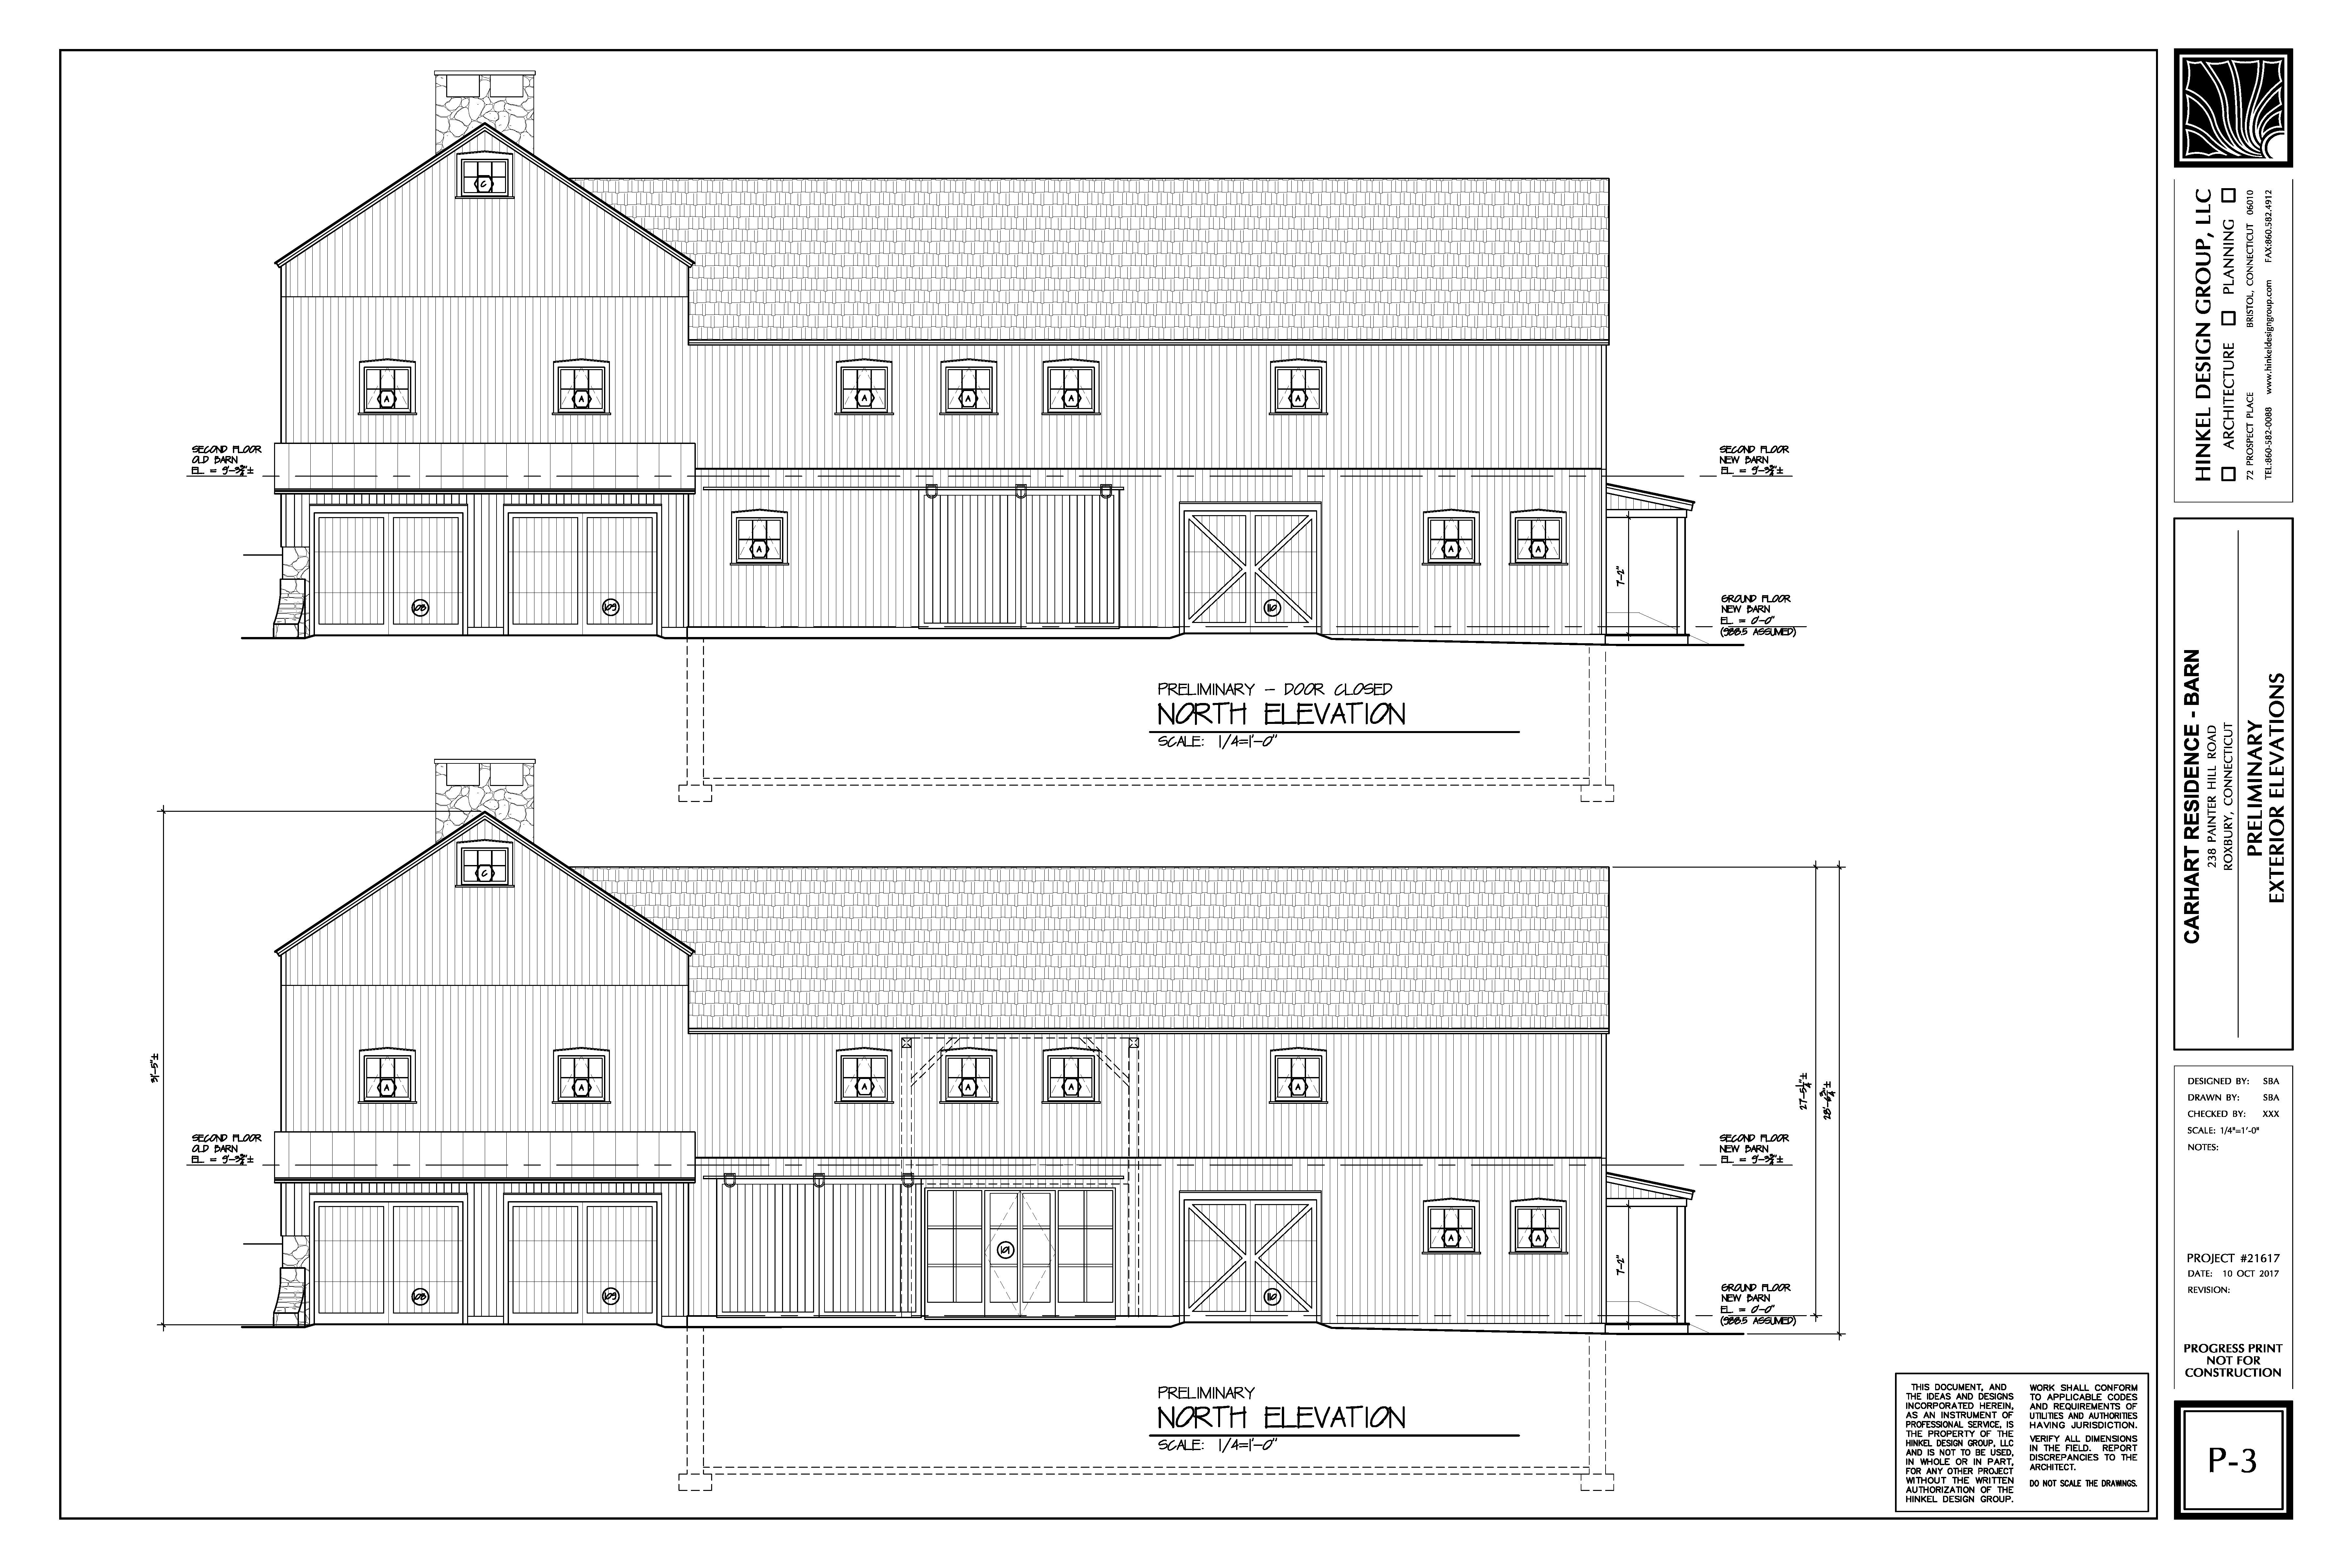 Proposed Barn Remodel: Elevation North